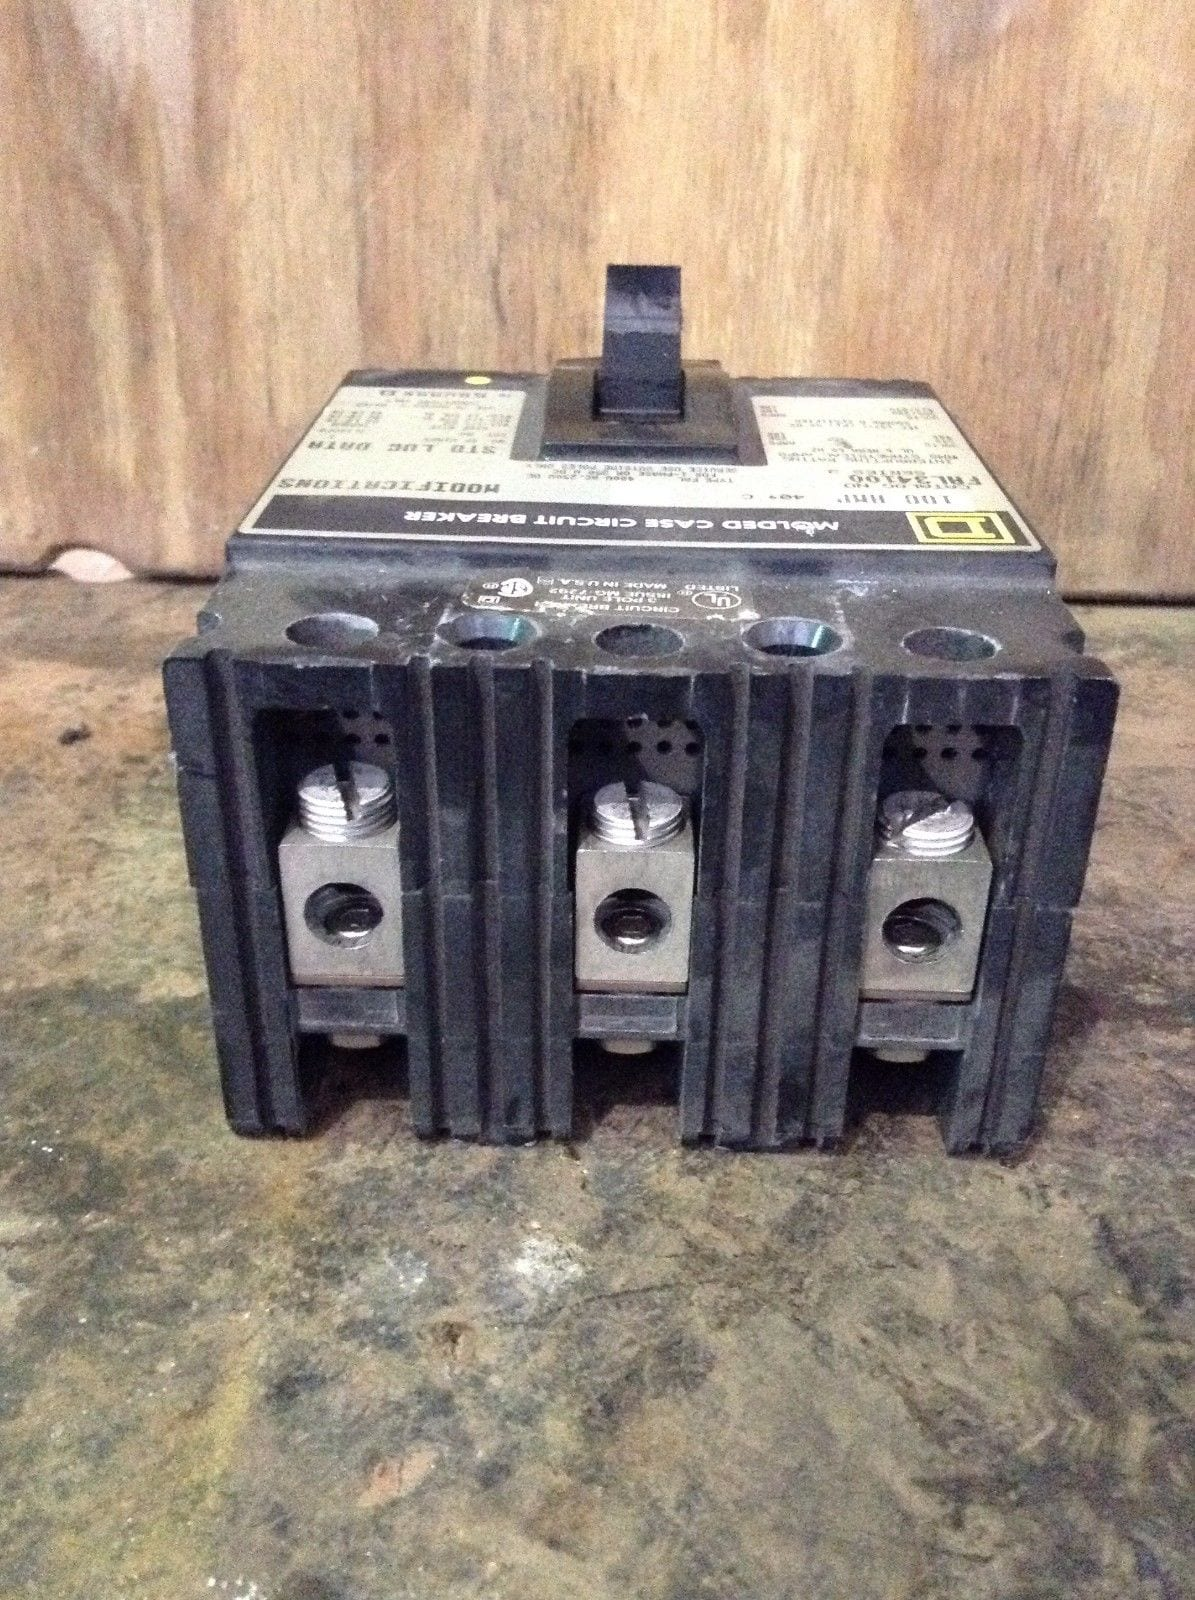 Square D Fal34100 100a Mcb Miniature Circuit Breaker 480vac 250vdc Working Of How Works